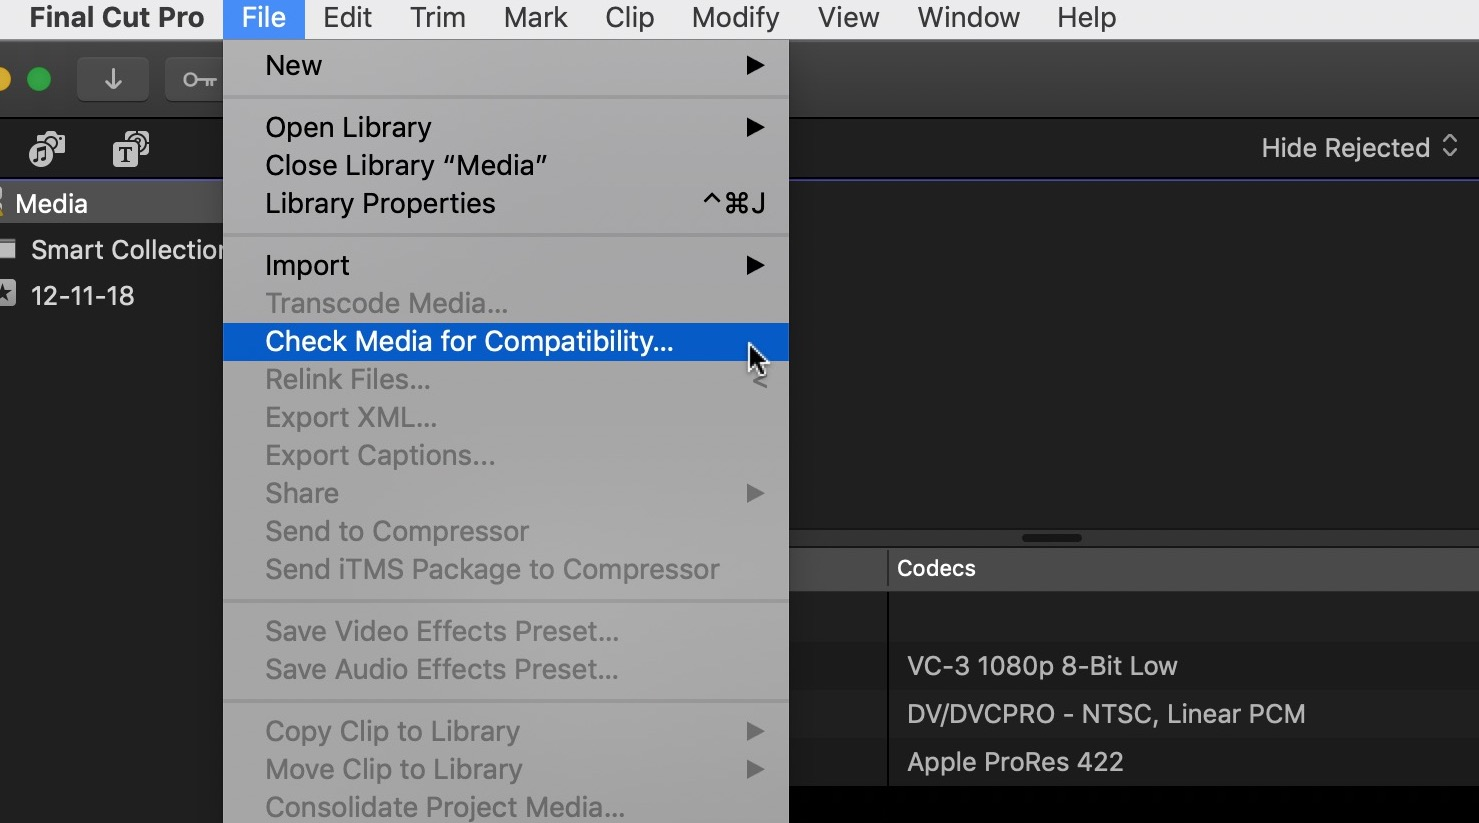 Final Cut Pro X updated to 10.4.6 to deal with Legacy Media 16